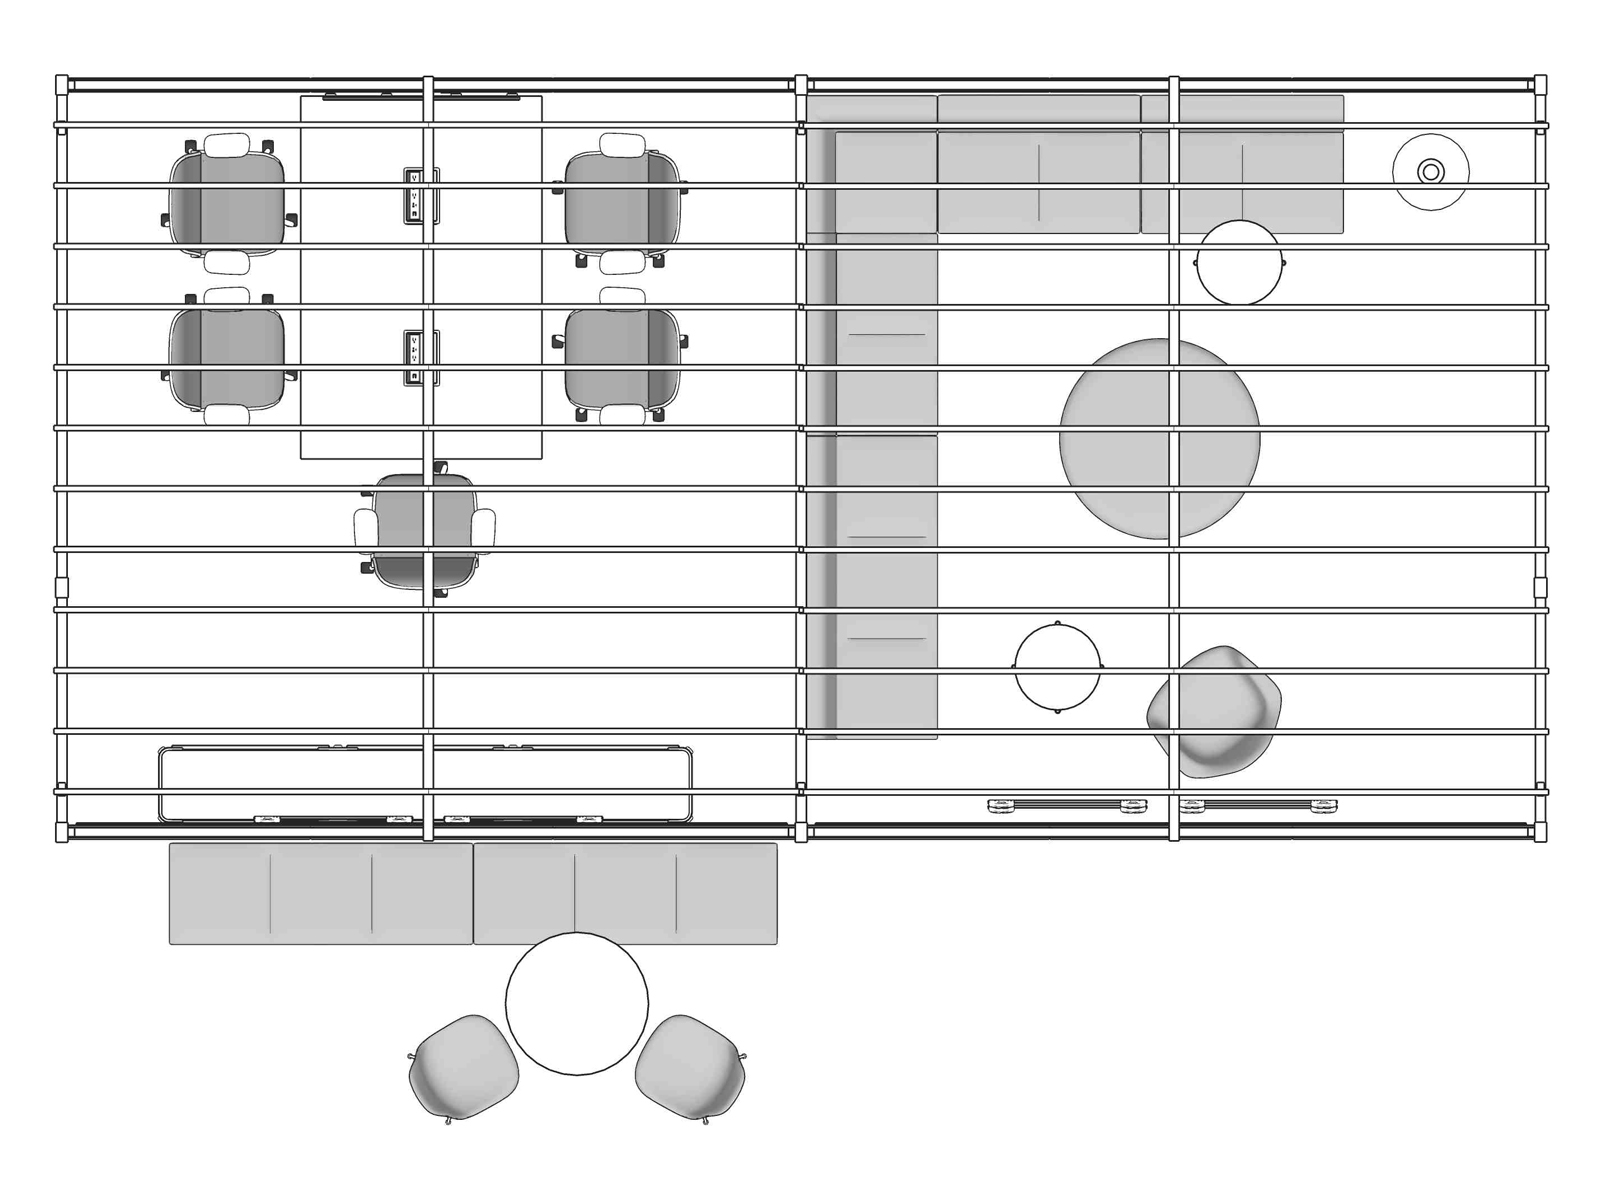 A line drawing viewed from above - Library 003